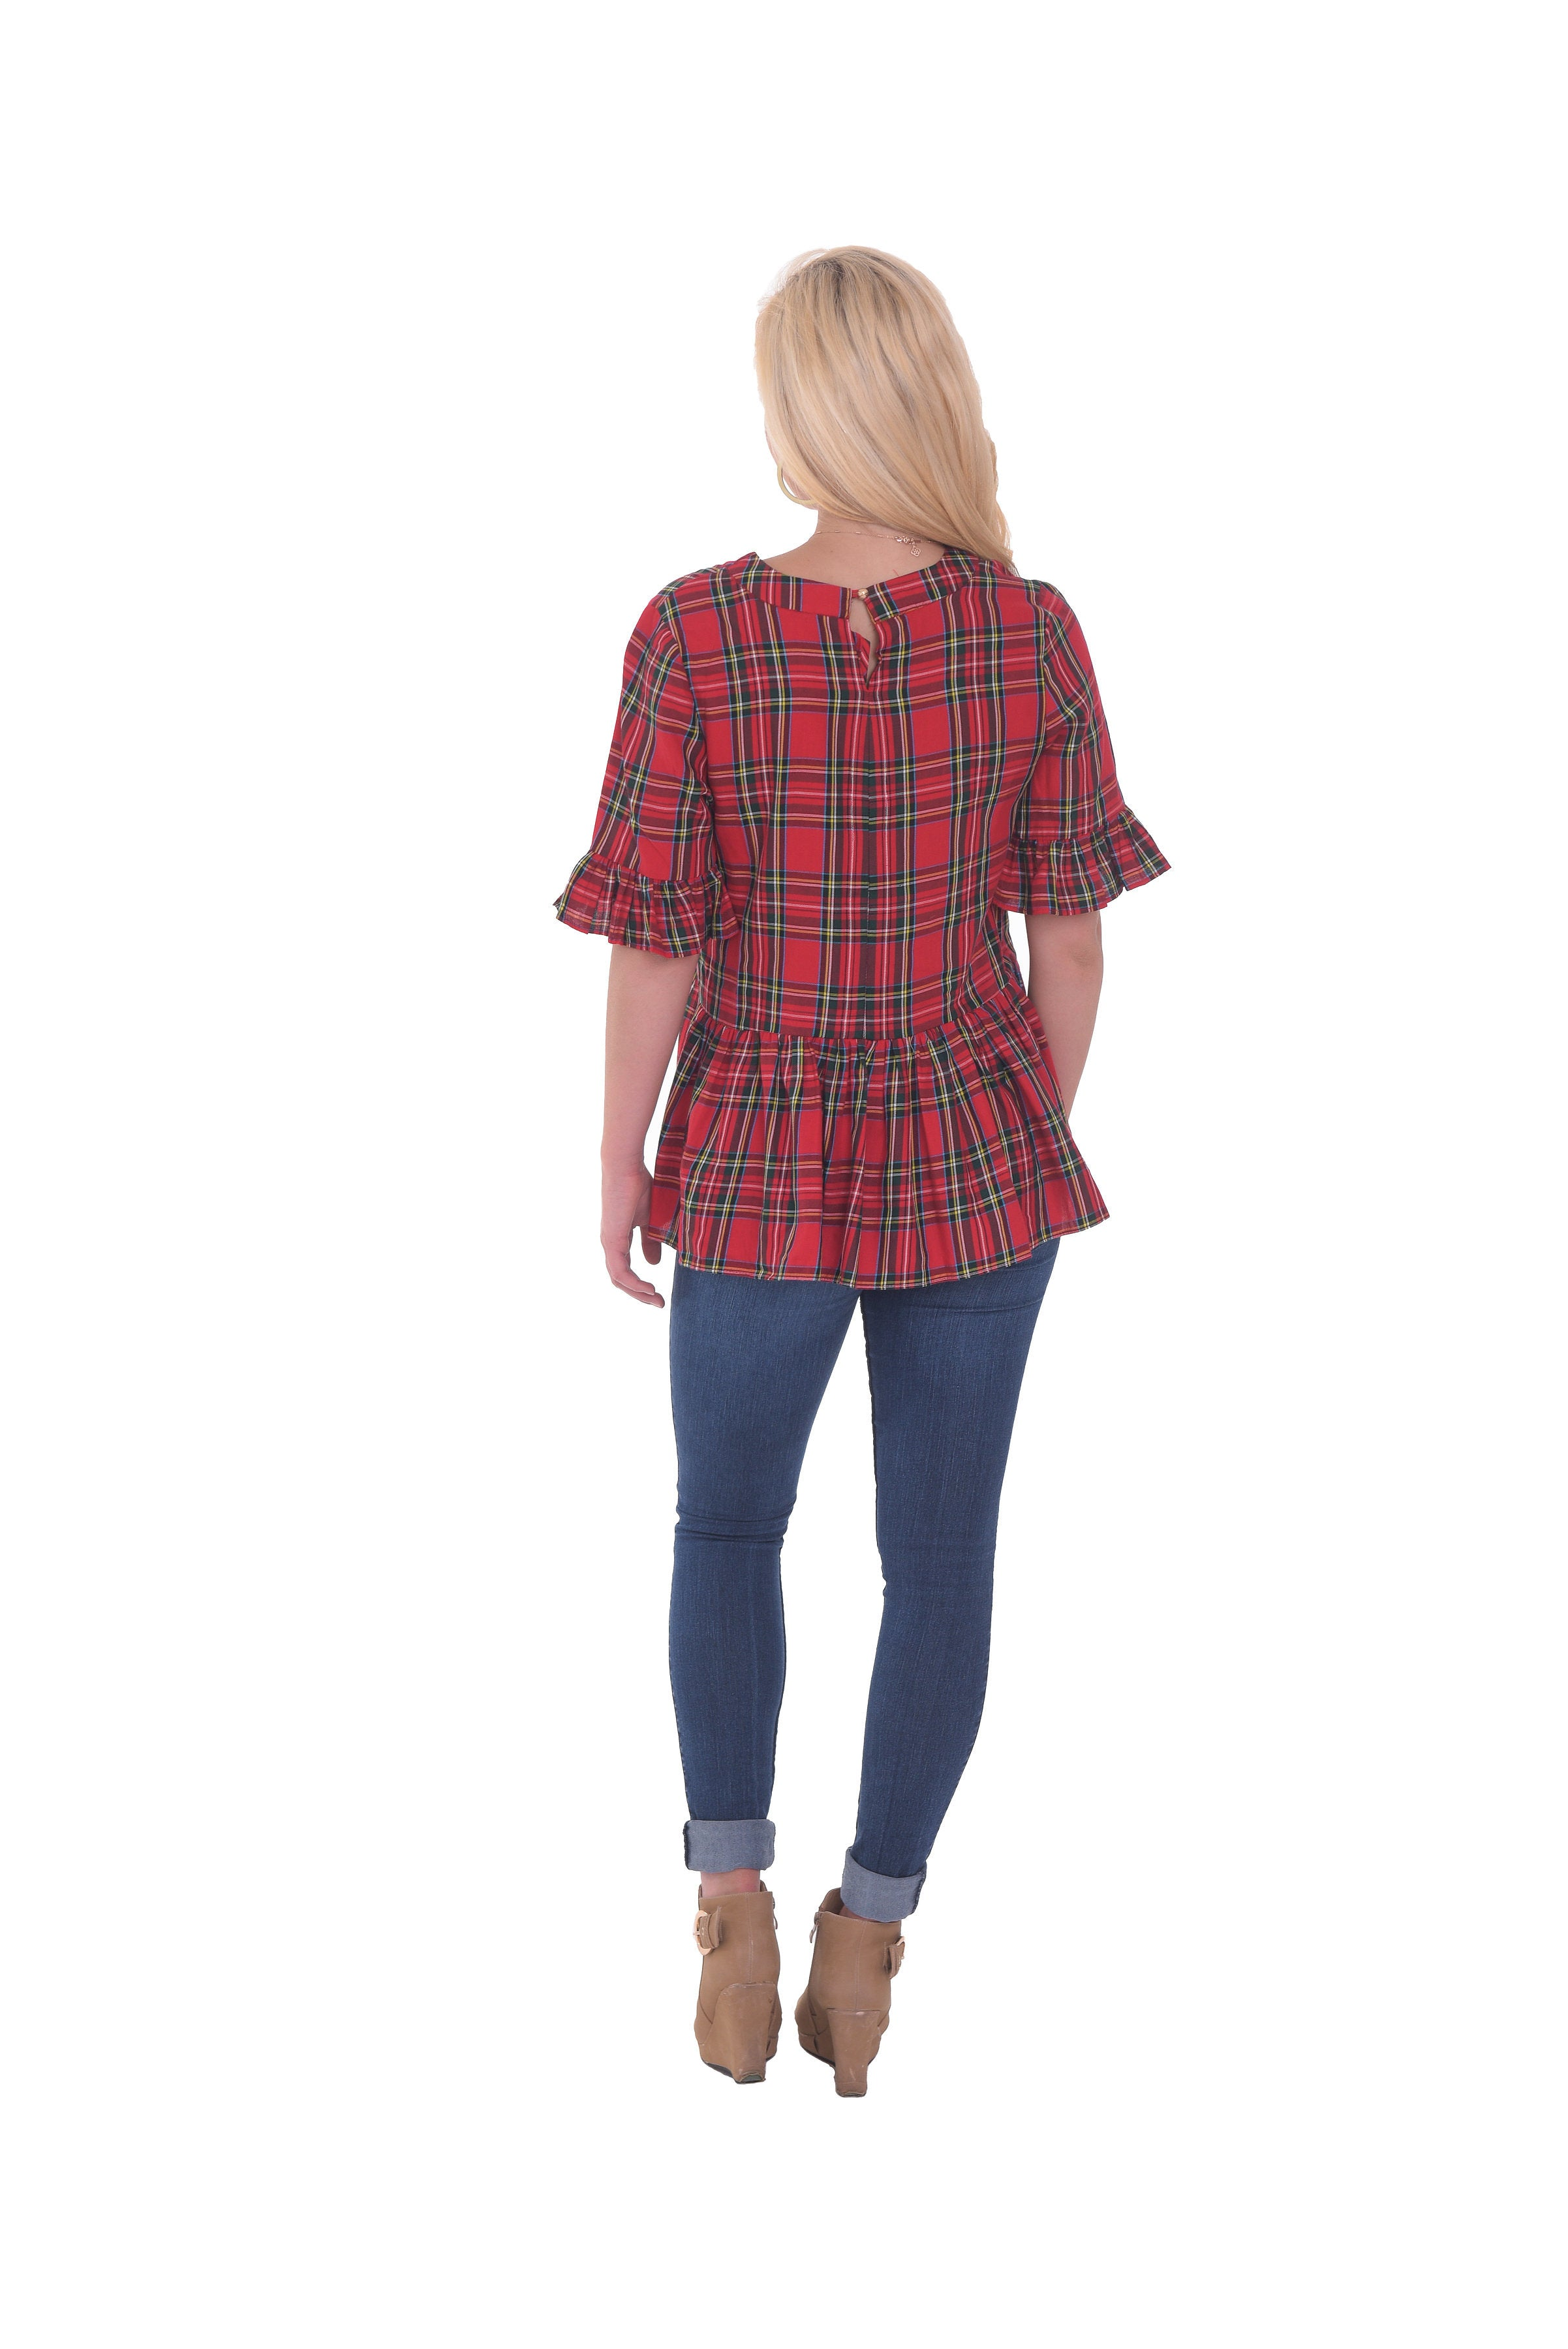 Betty B Top - Red Plaid